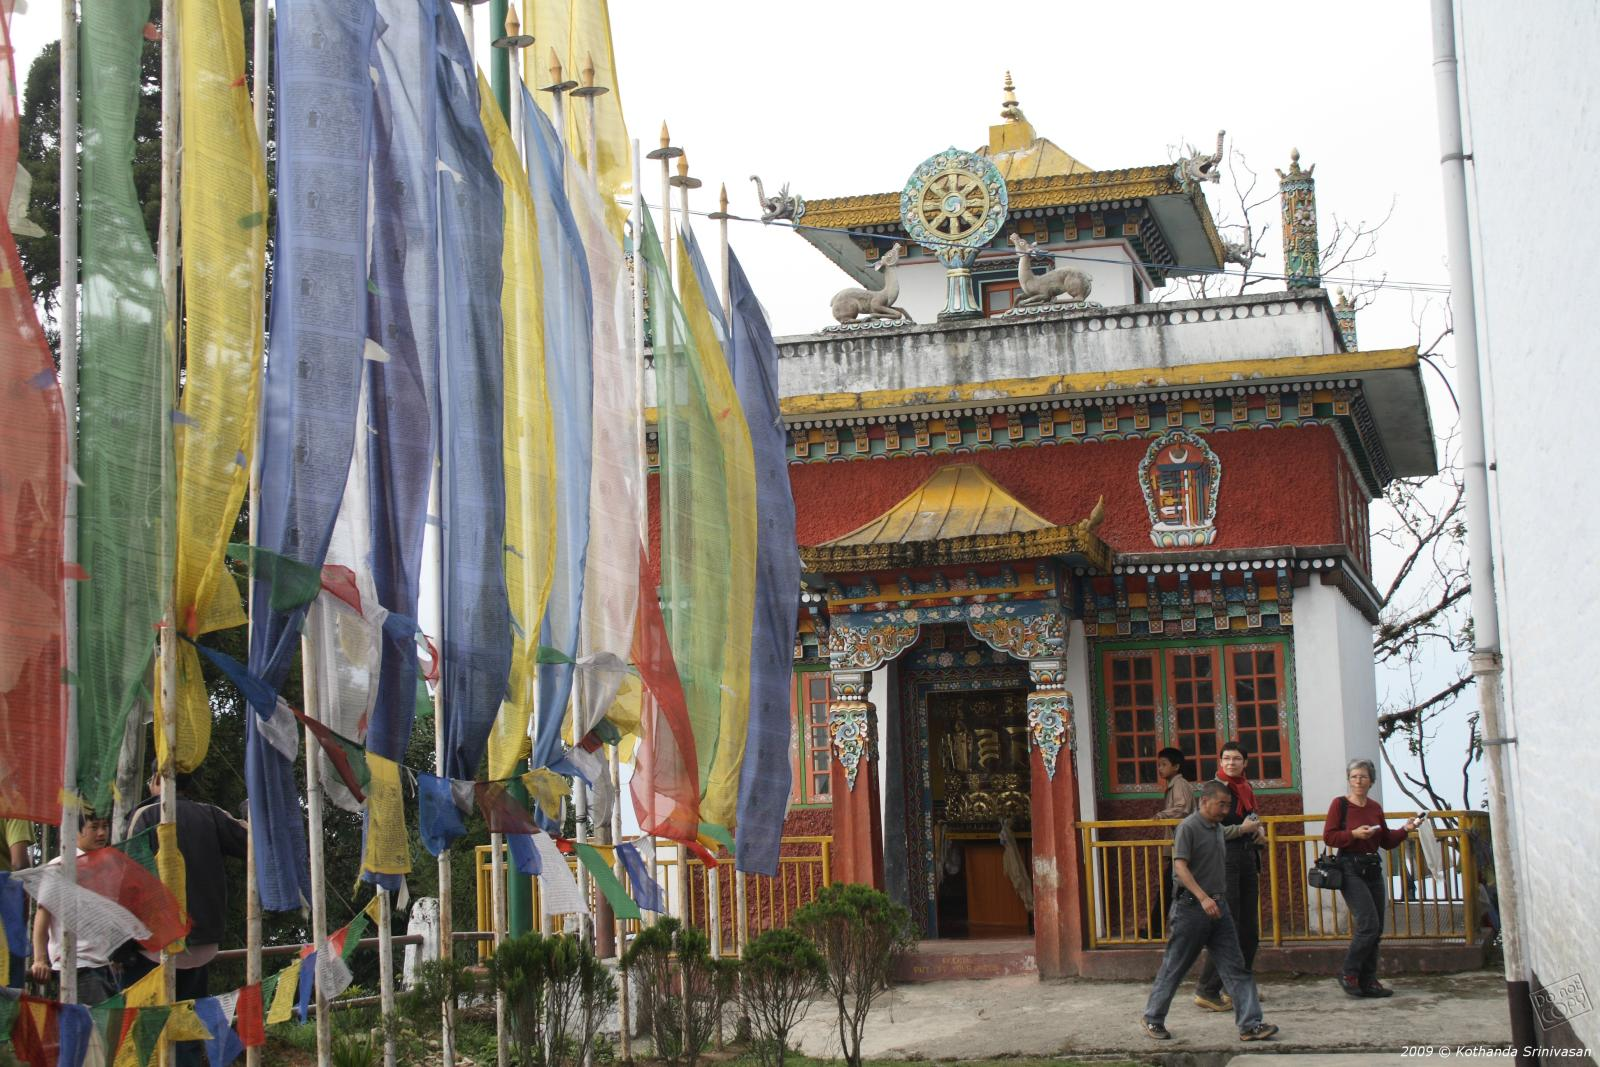 Main Shrine of Pemangytse Monastery with prayer flags